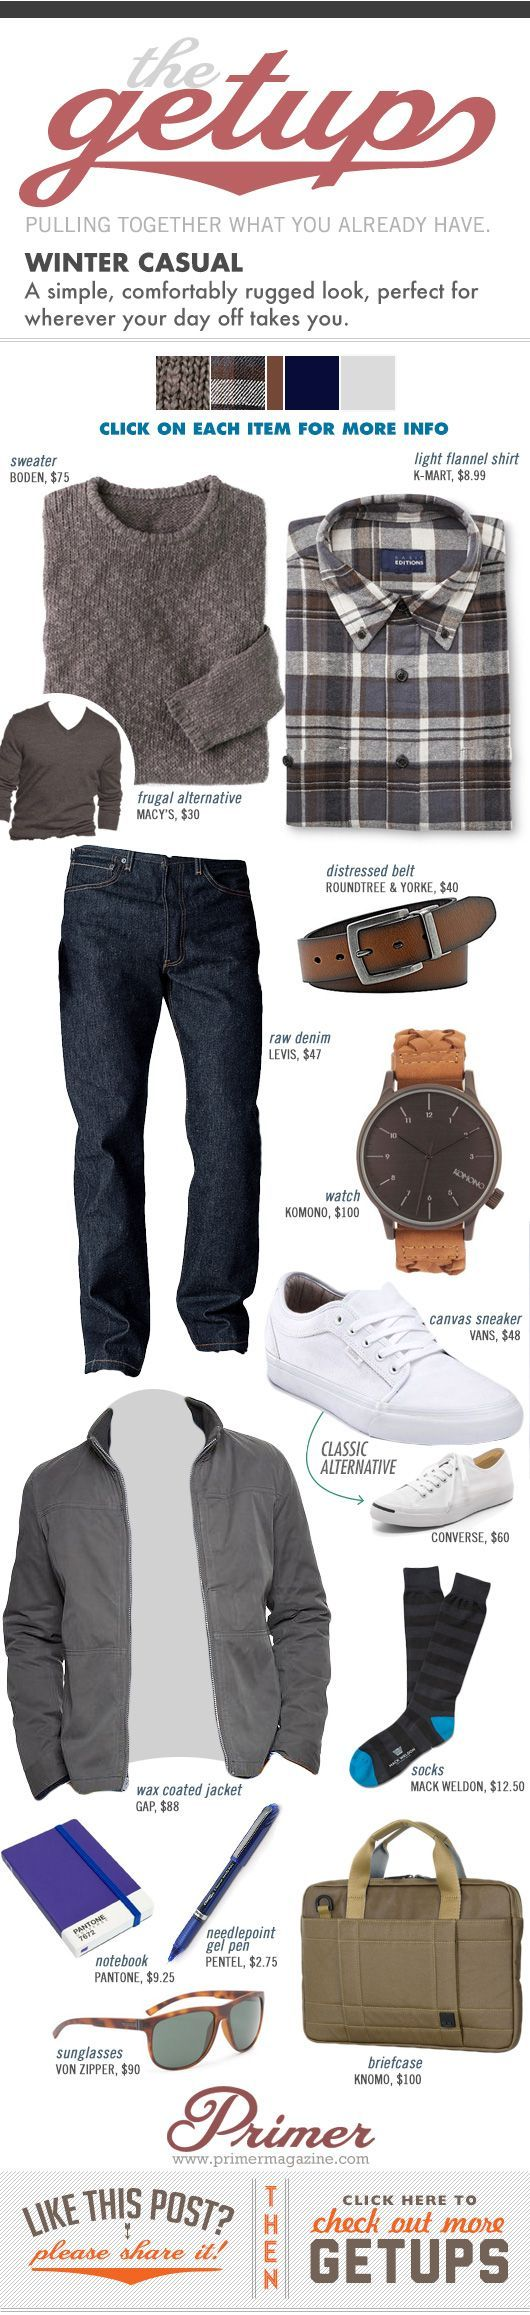 The Getup: Winter Casual - Primer